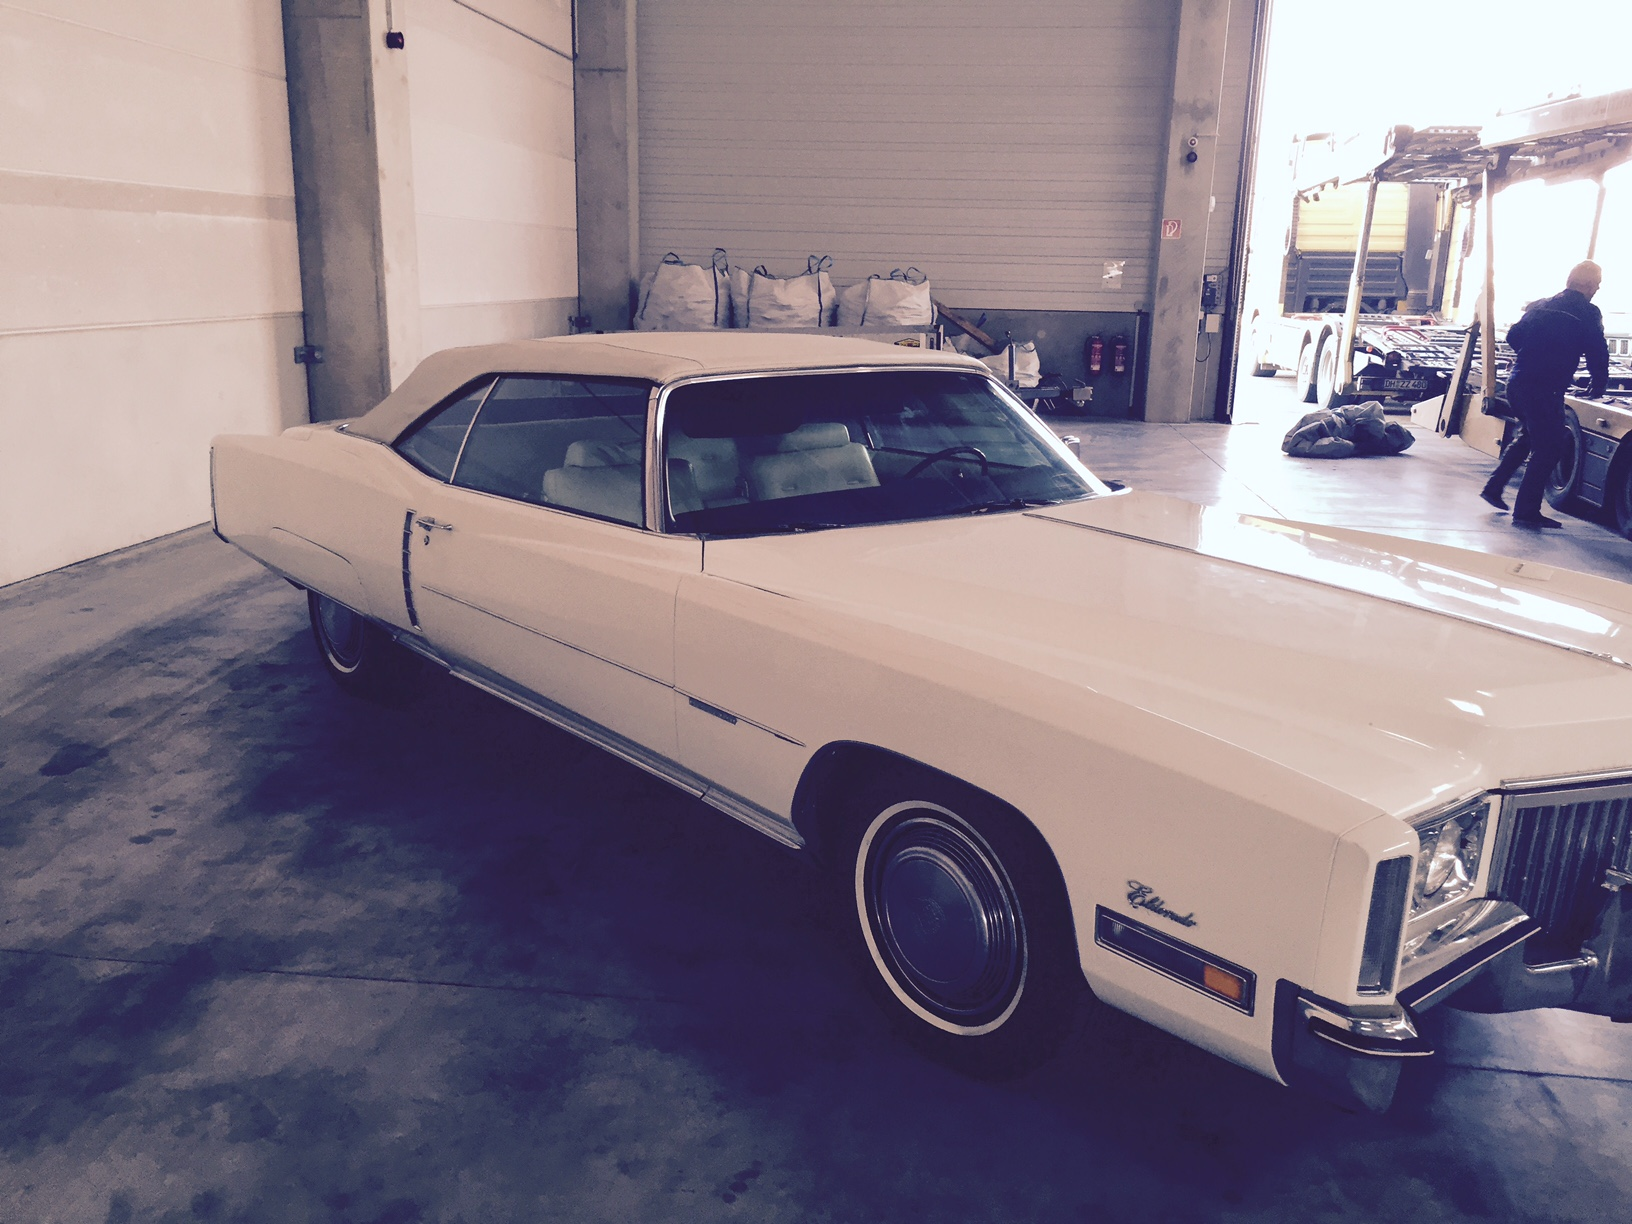 72 caddy dd 2